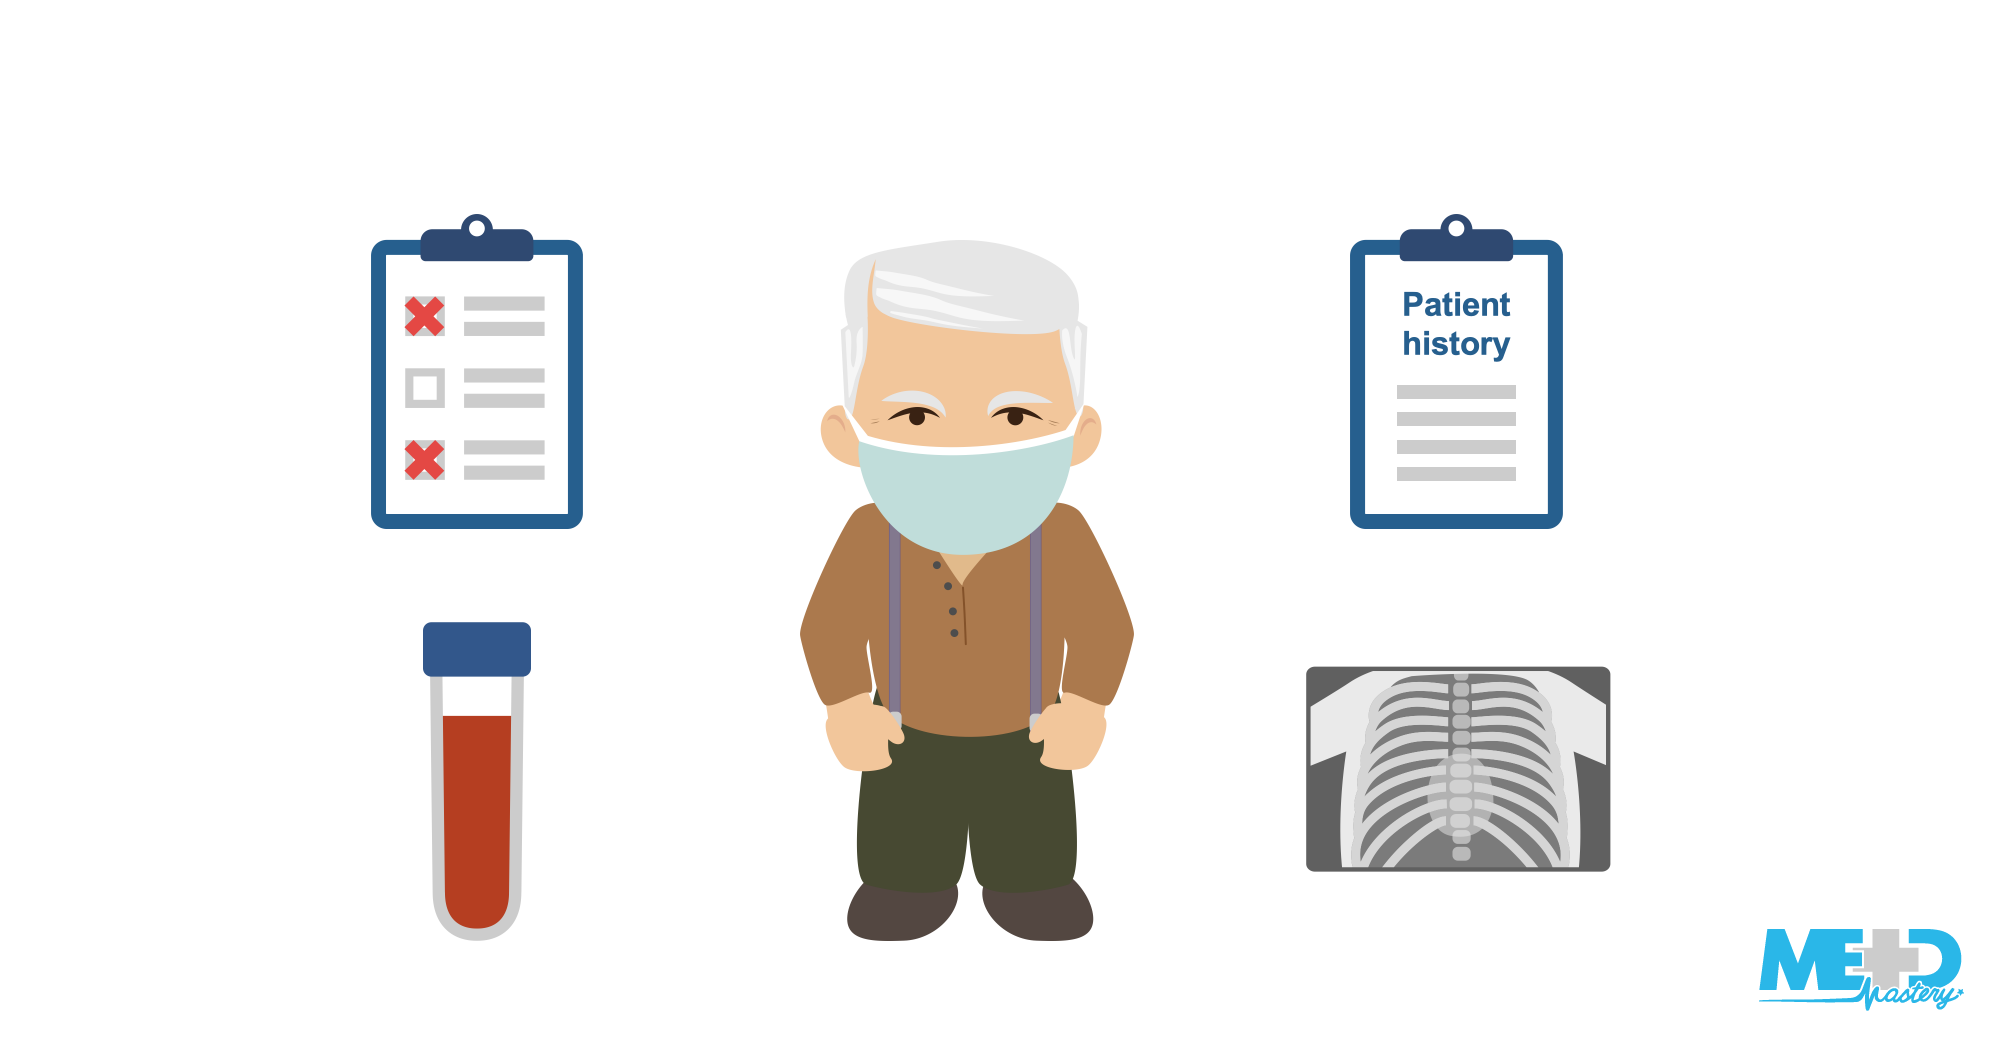 Multi-component illustration of checklist, patient history checklist, blood sample, and chest x-ray around an elderly man wearing a mask.